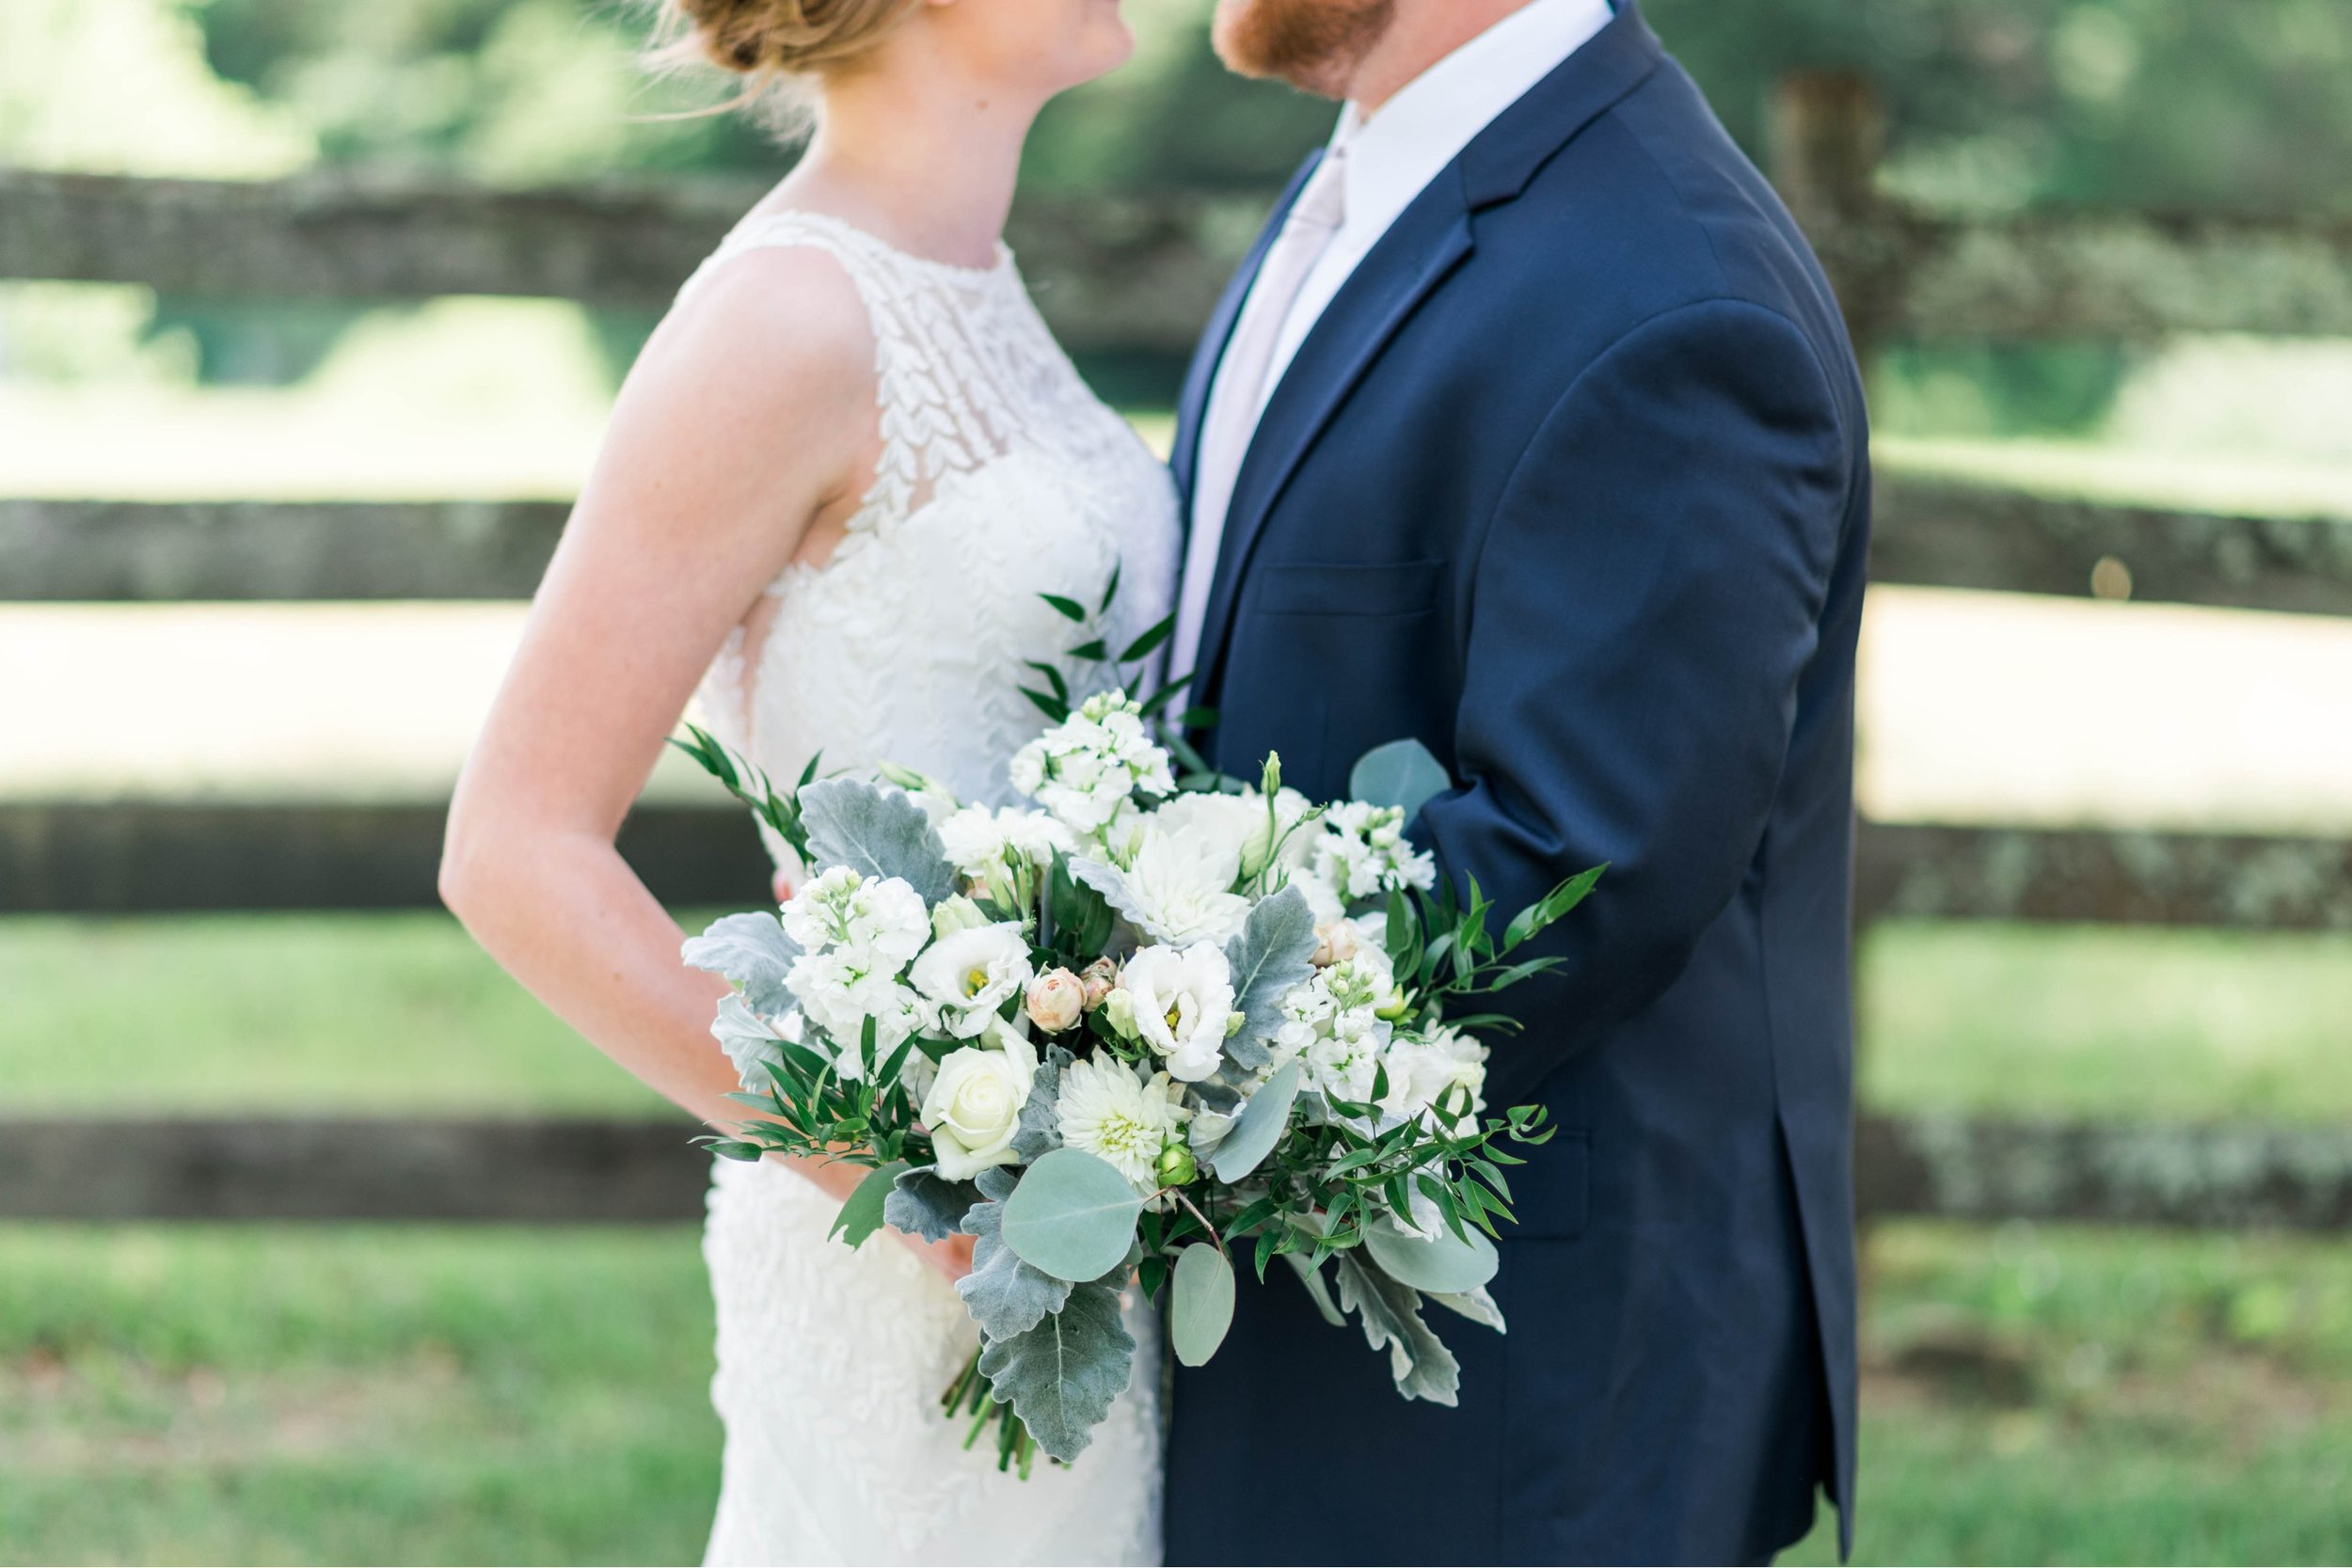 SorellaFarms_VirginiaWeddingPhotographer_BarnWedding_Lynchburgweddingphotographer_DanielleTyler 34.jpg